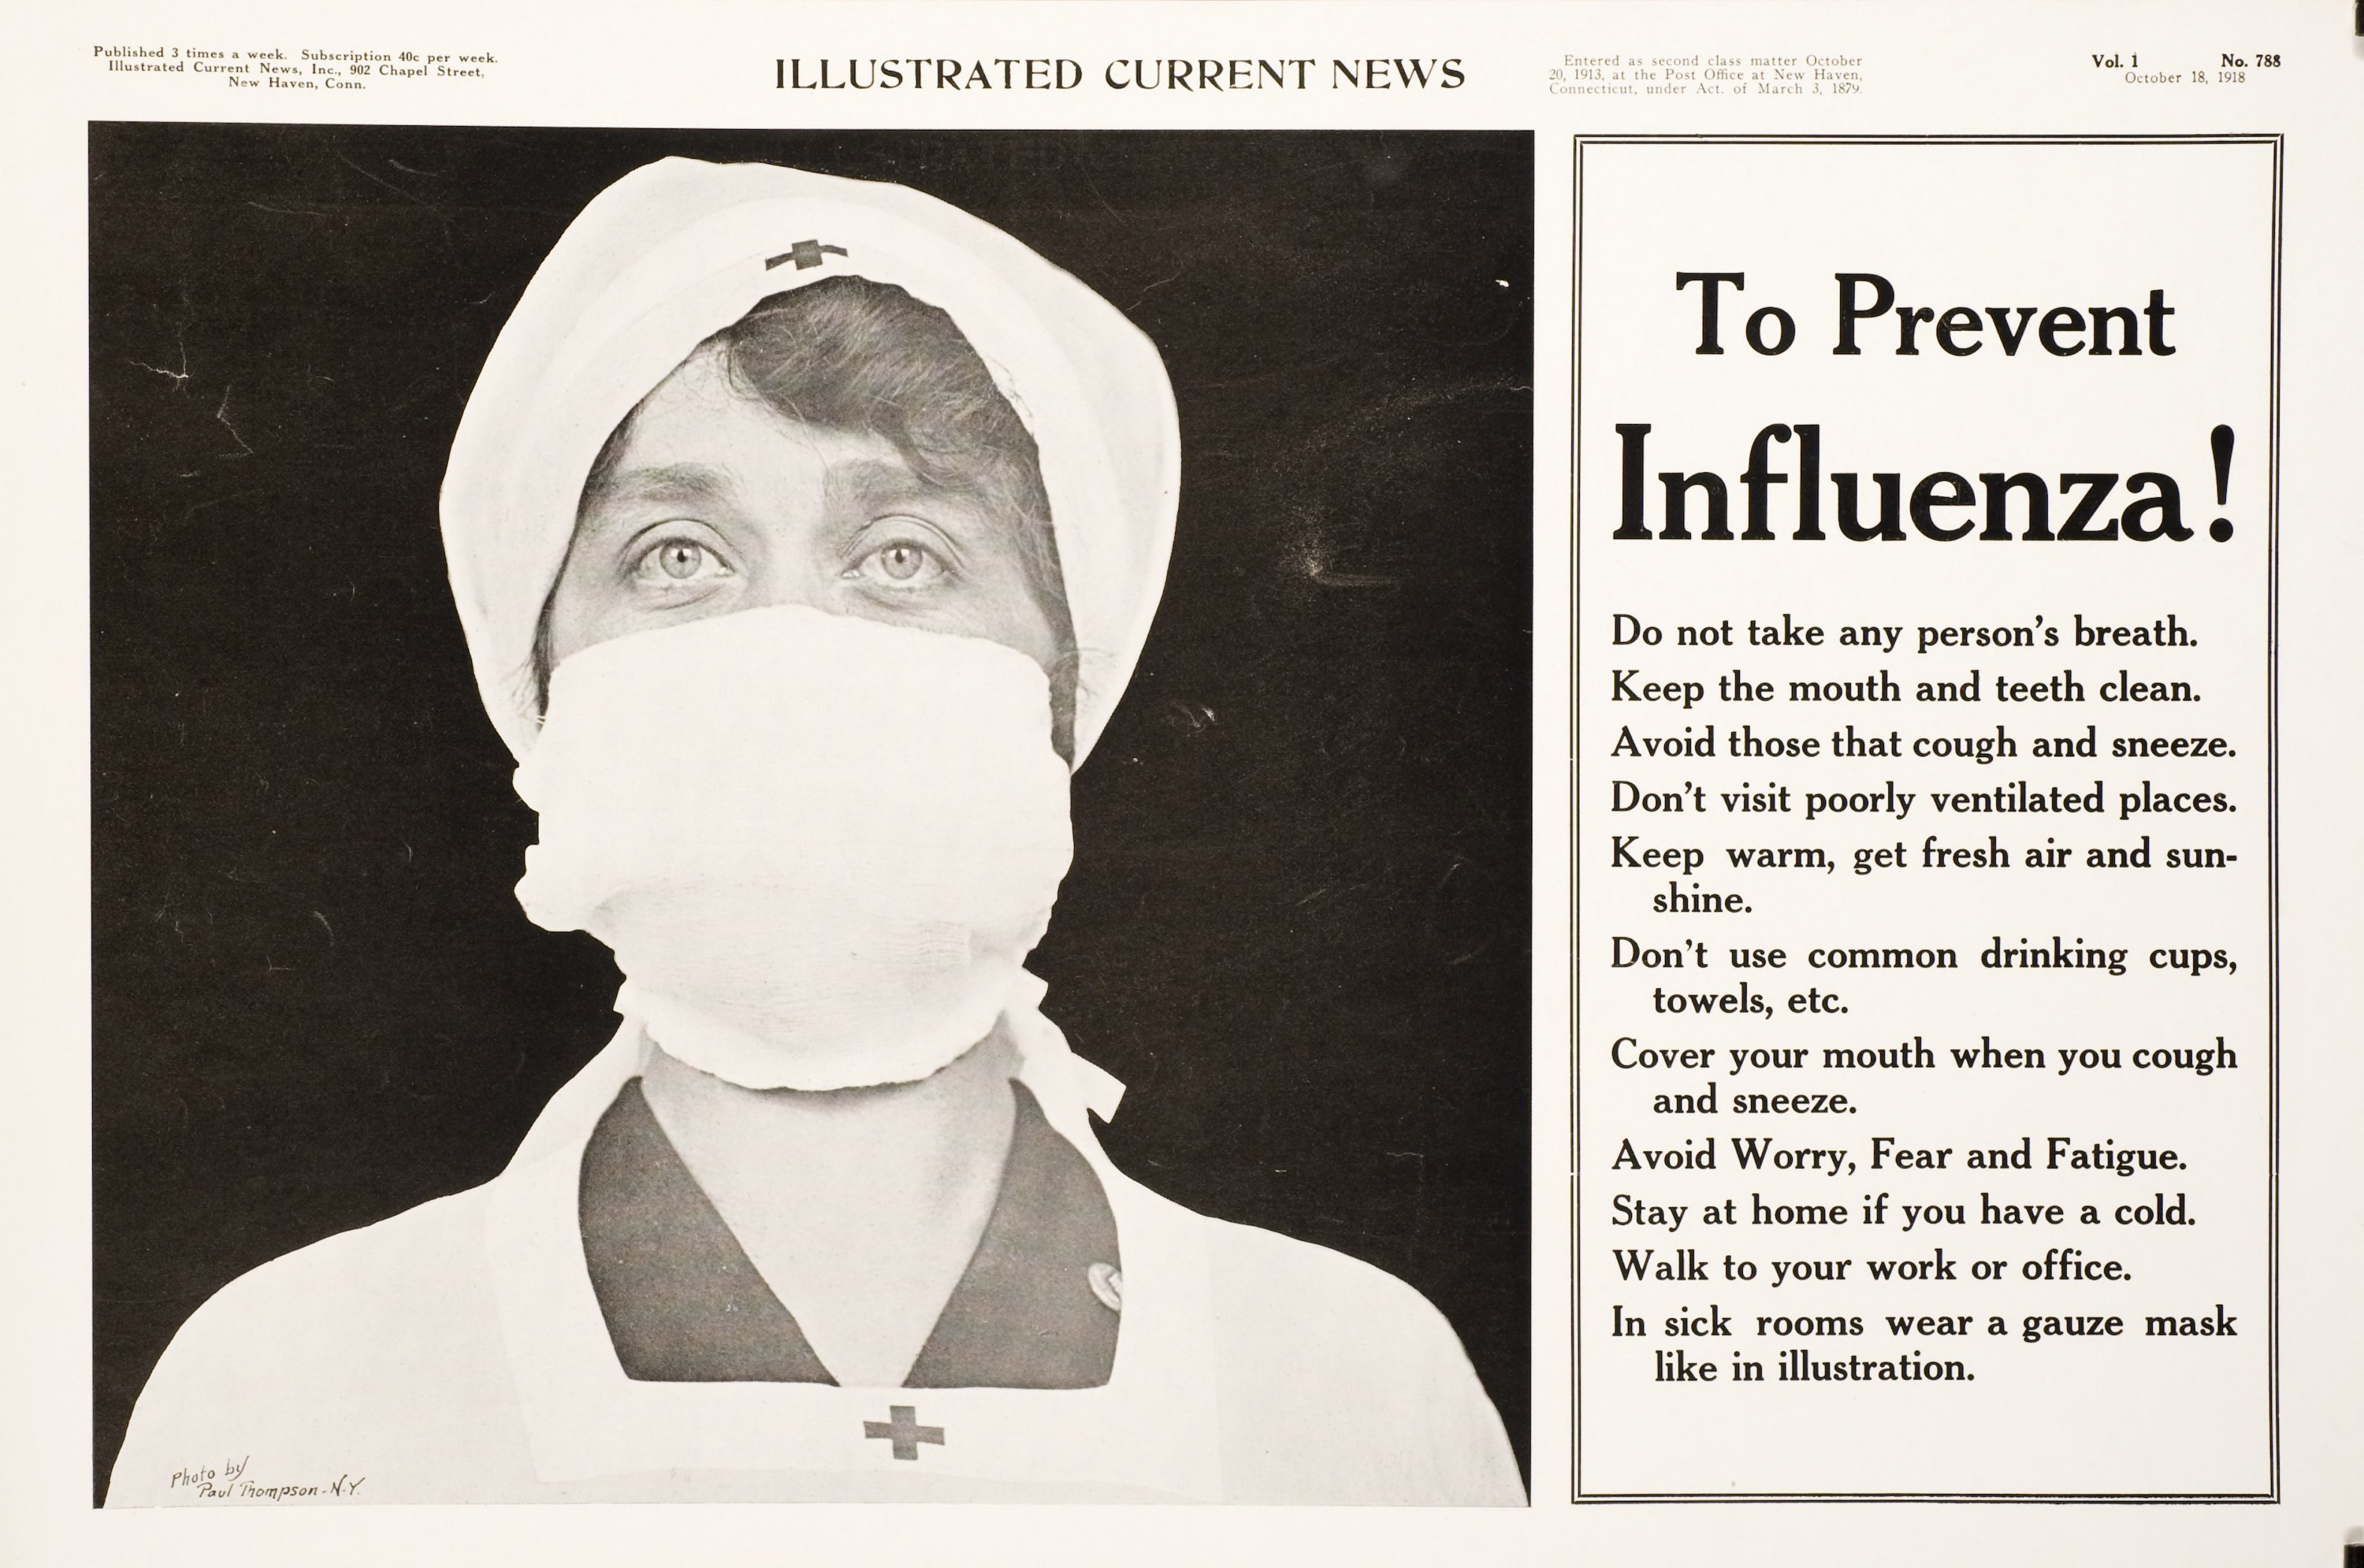 Black and white poster. Visual image is a photograph of a Red Cross nurse with a gauze mask over her nose and mouth. Text next to the image provides tips to prevent influenza.